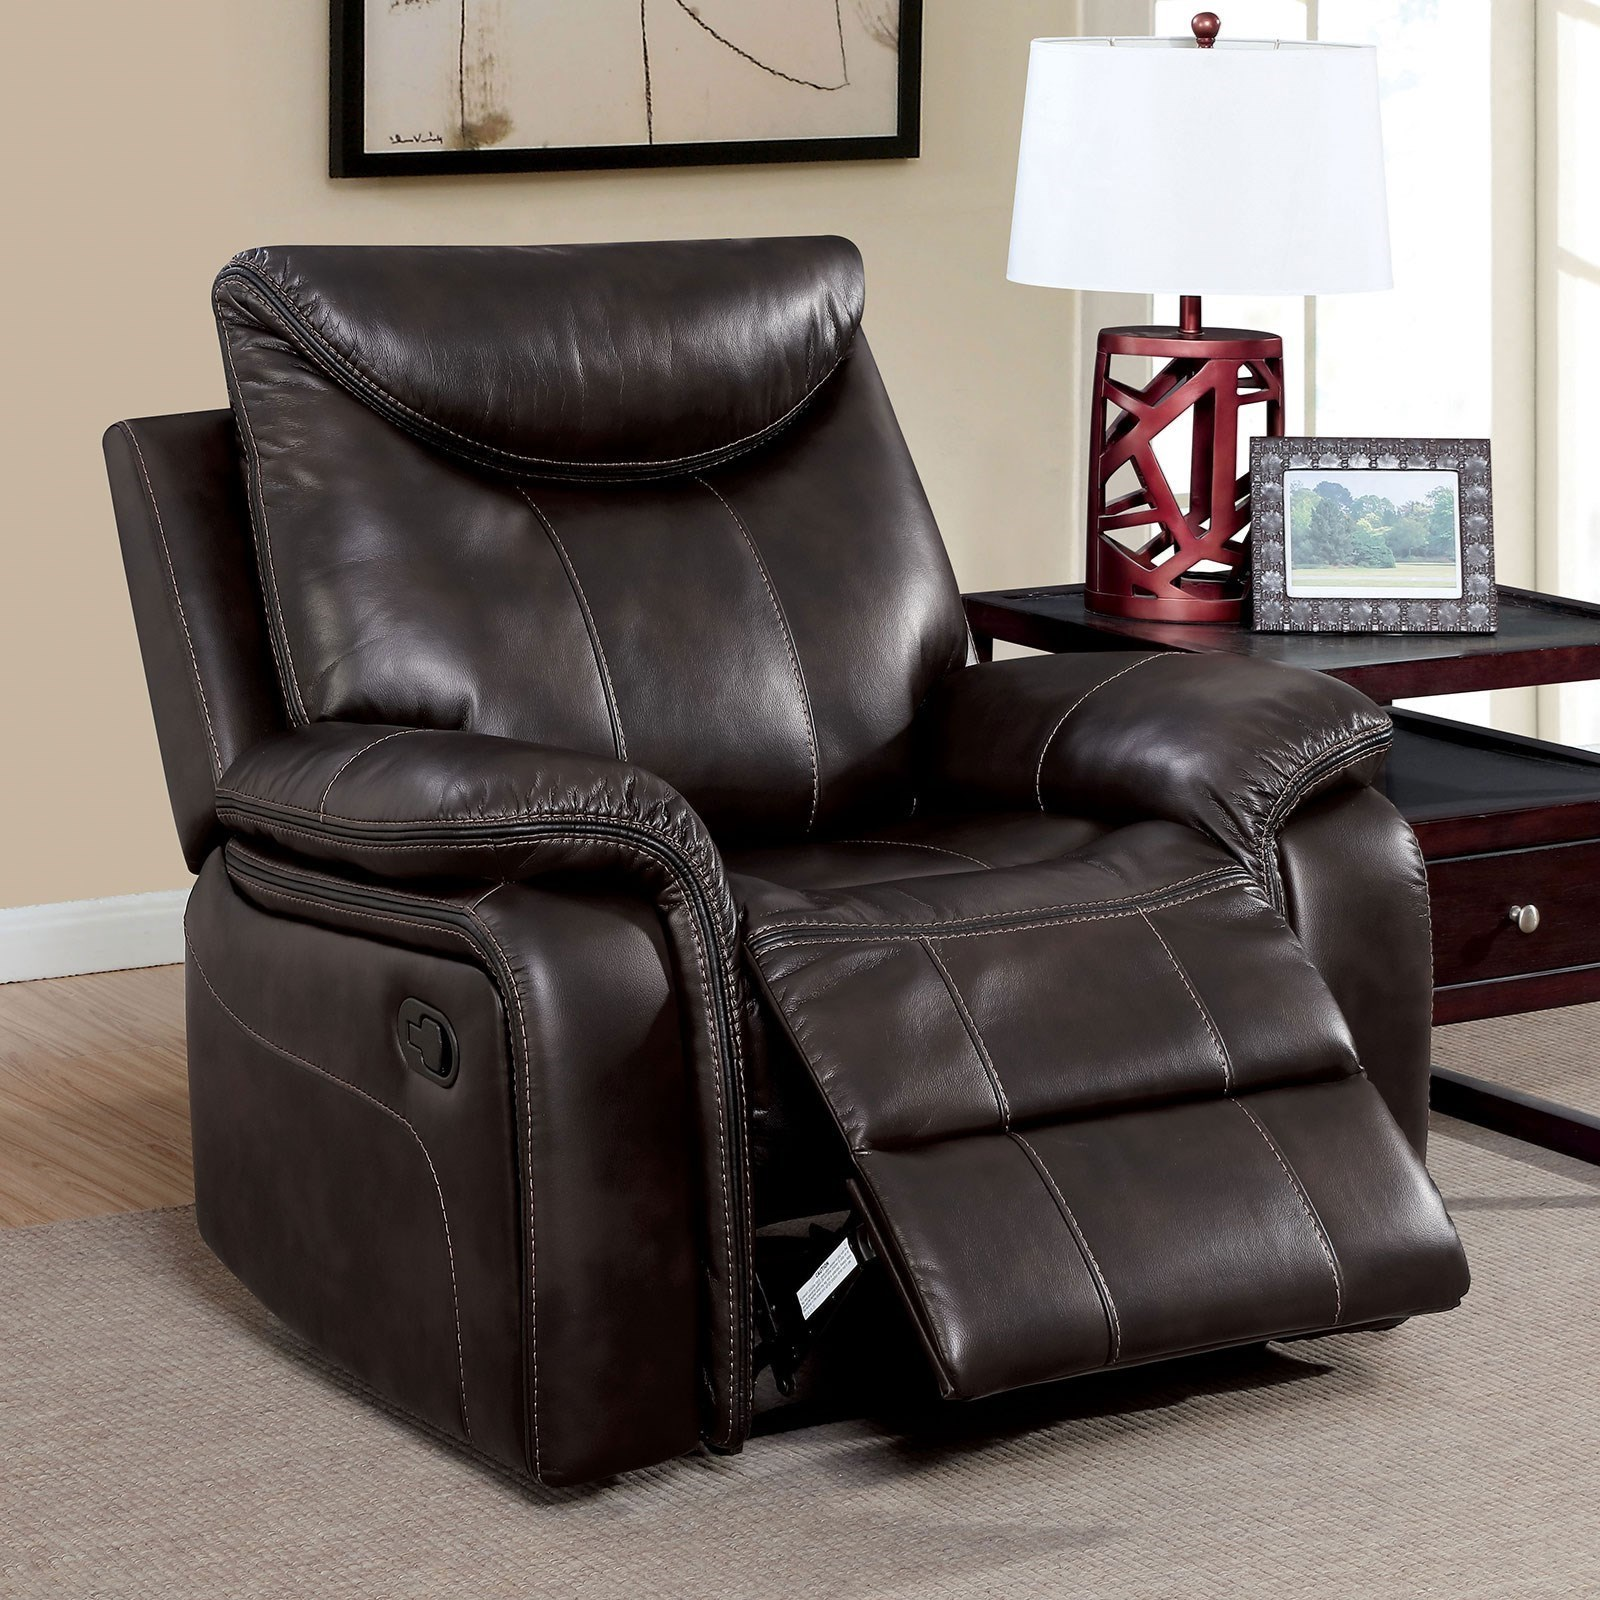 Karlee Recliner by Furniture of America at Corner Furniture